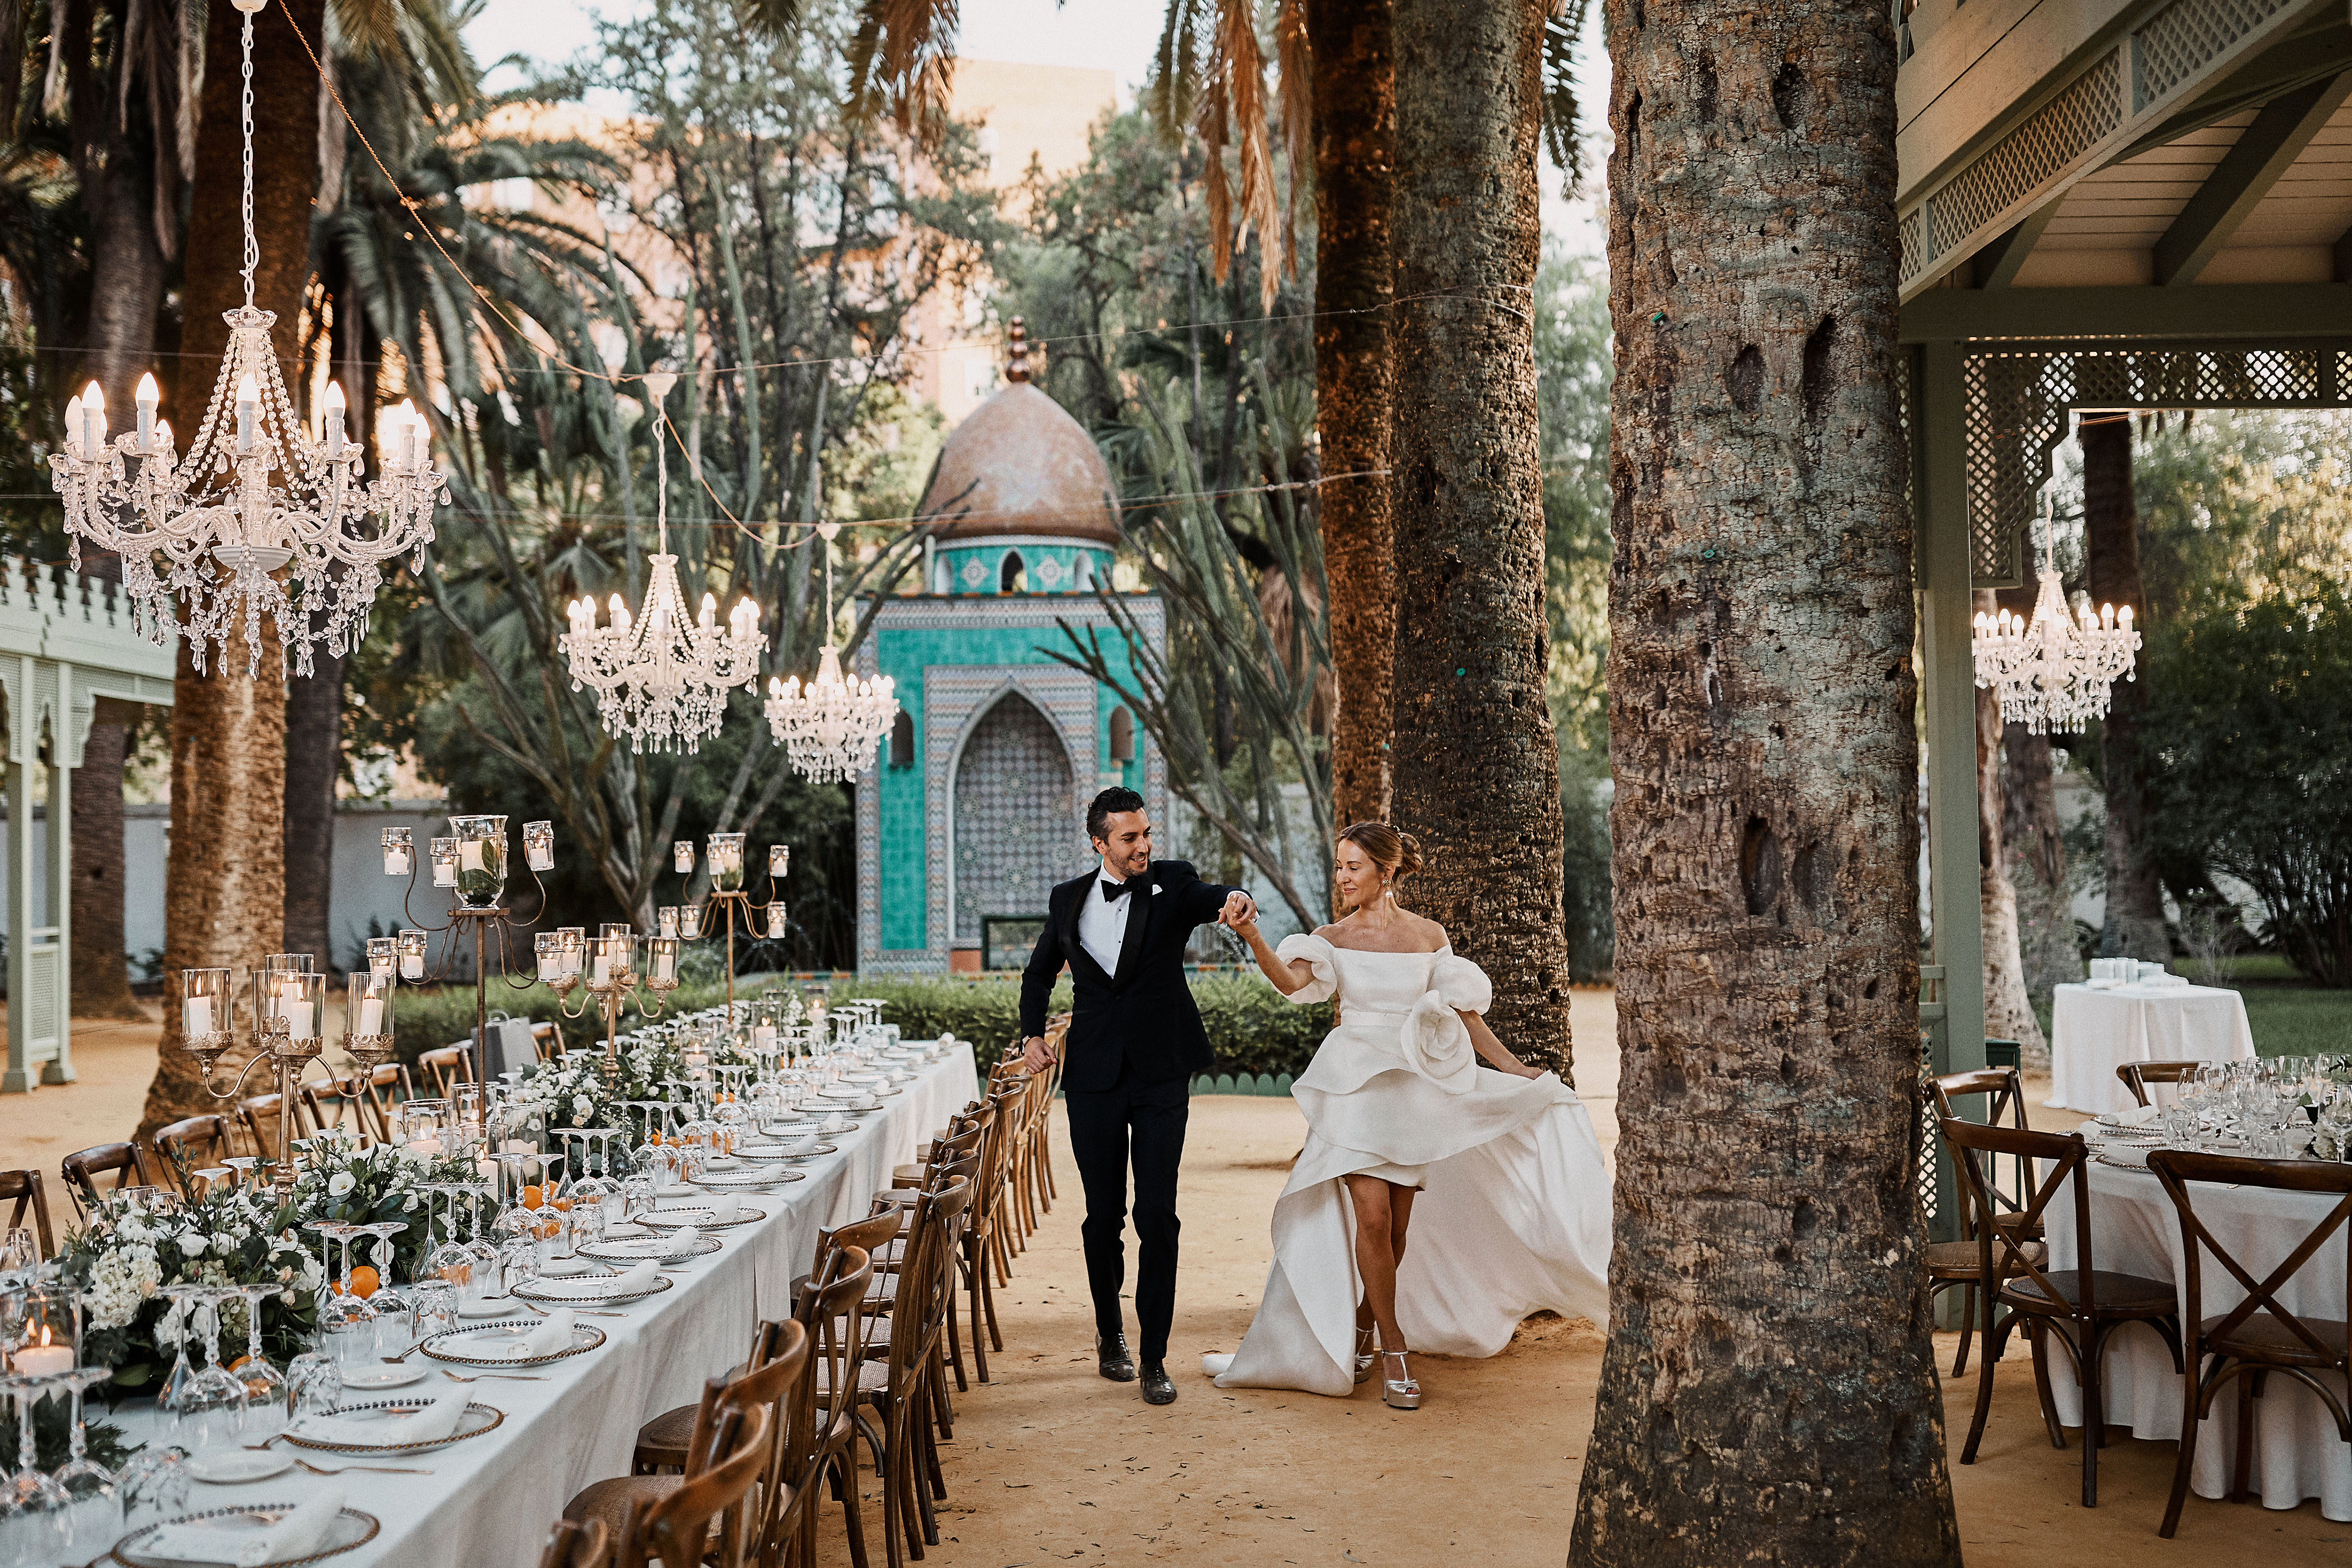 karolina sorab wedding couple outdoor reception